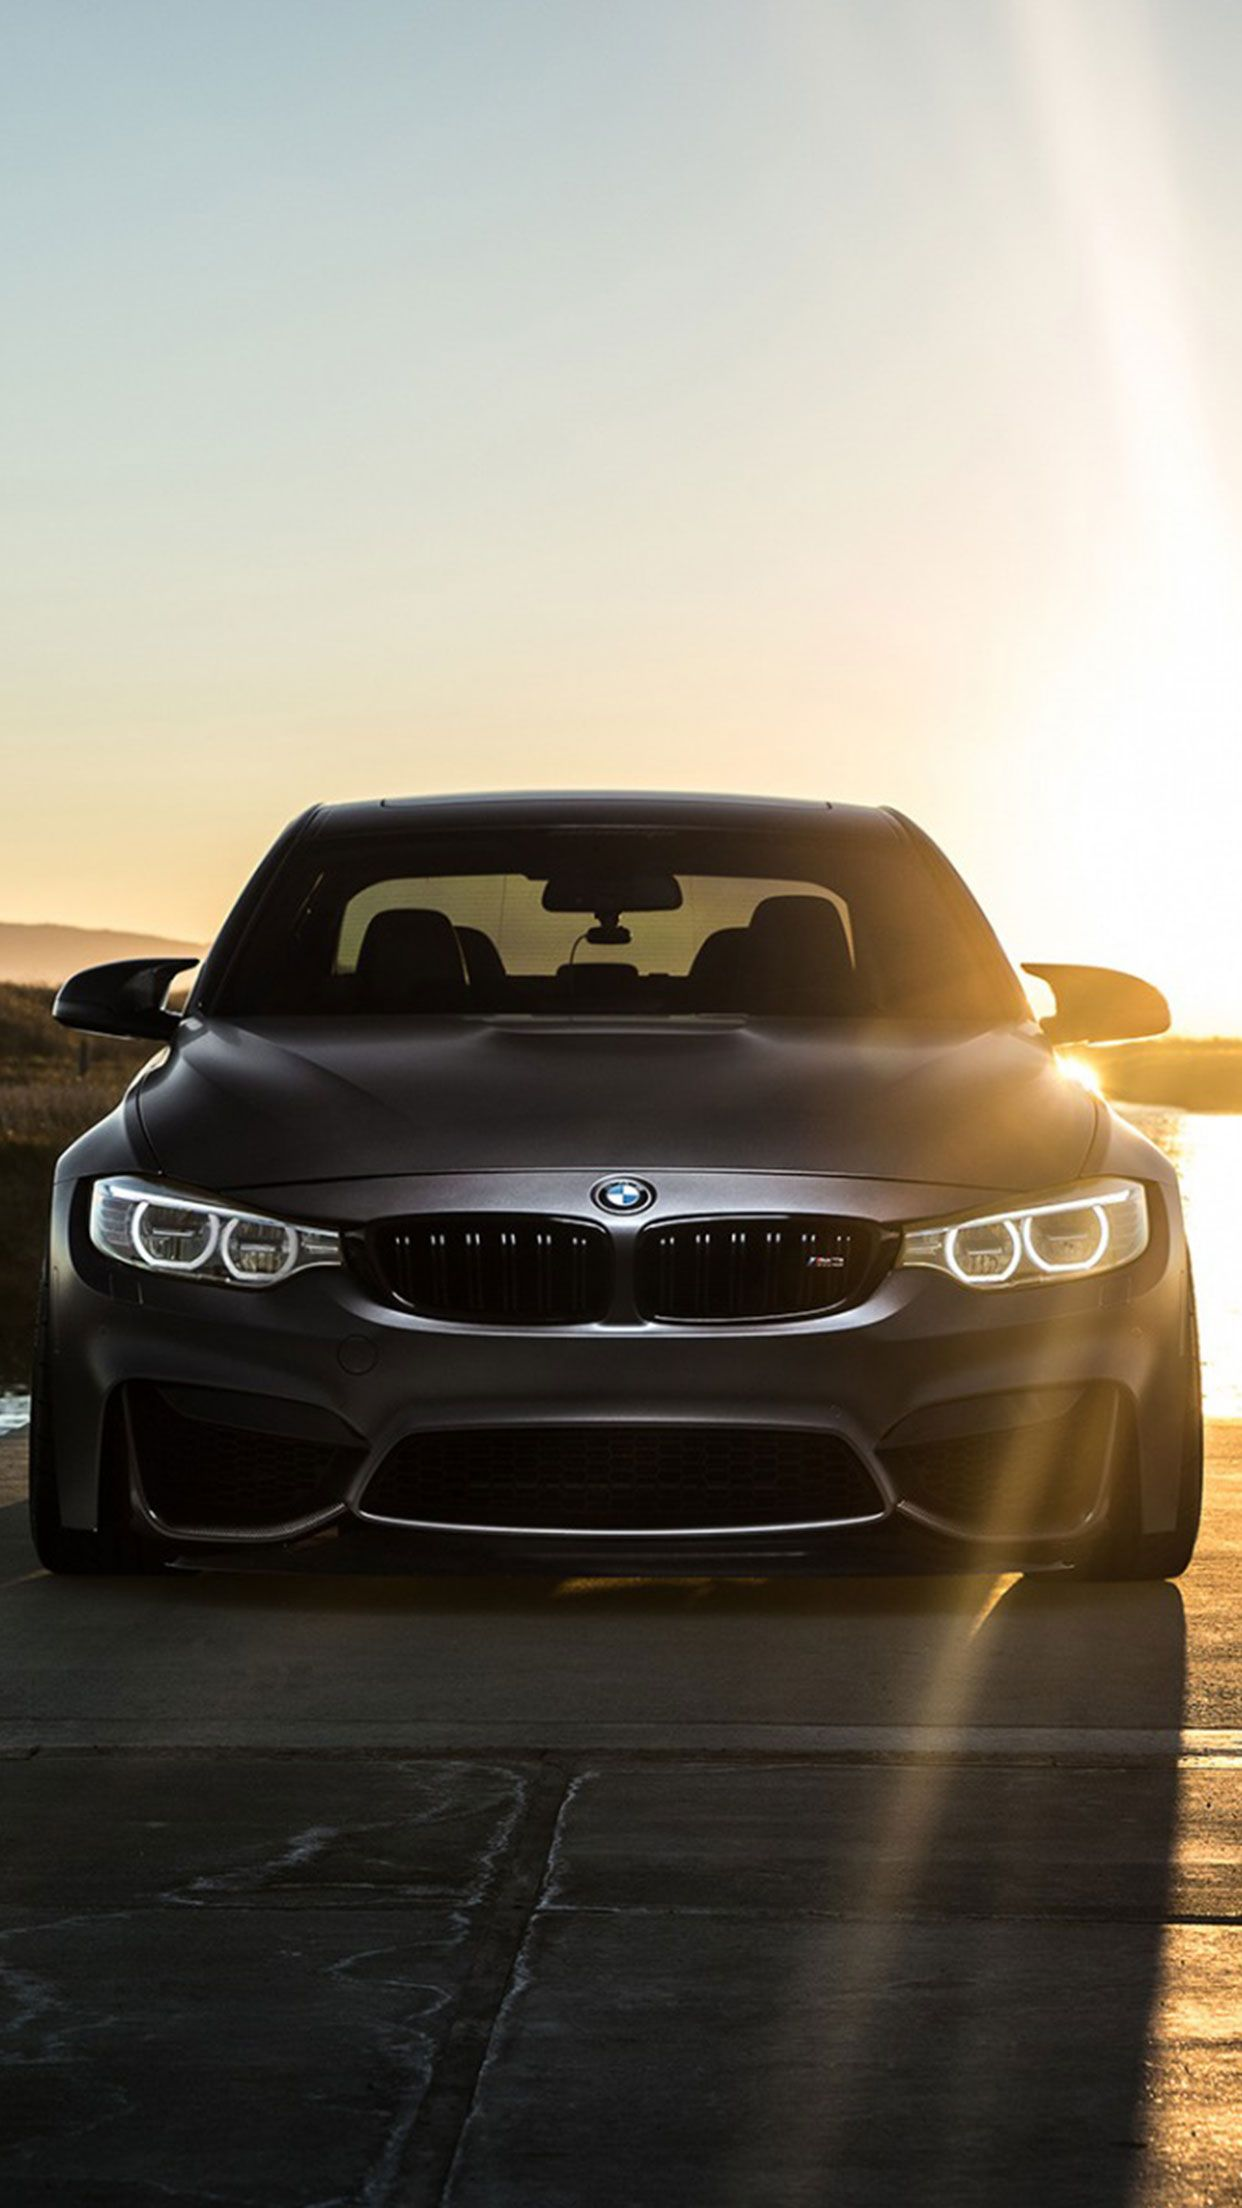 grey bmw car wallpaper for #iphone and #android #bmw #car at